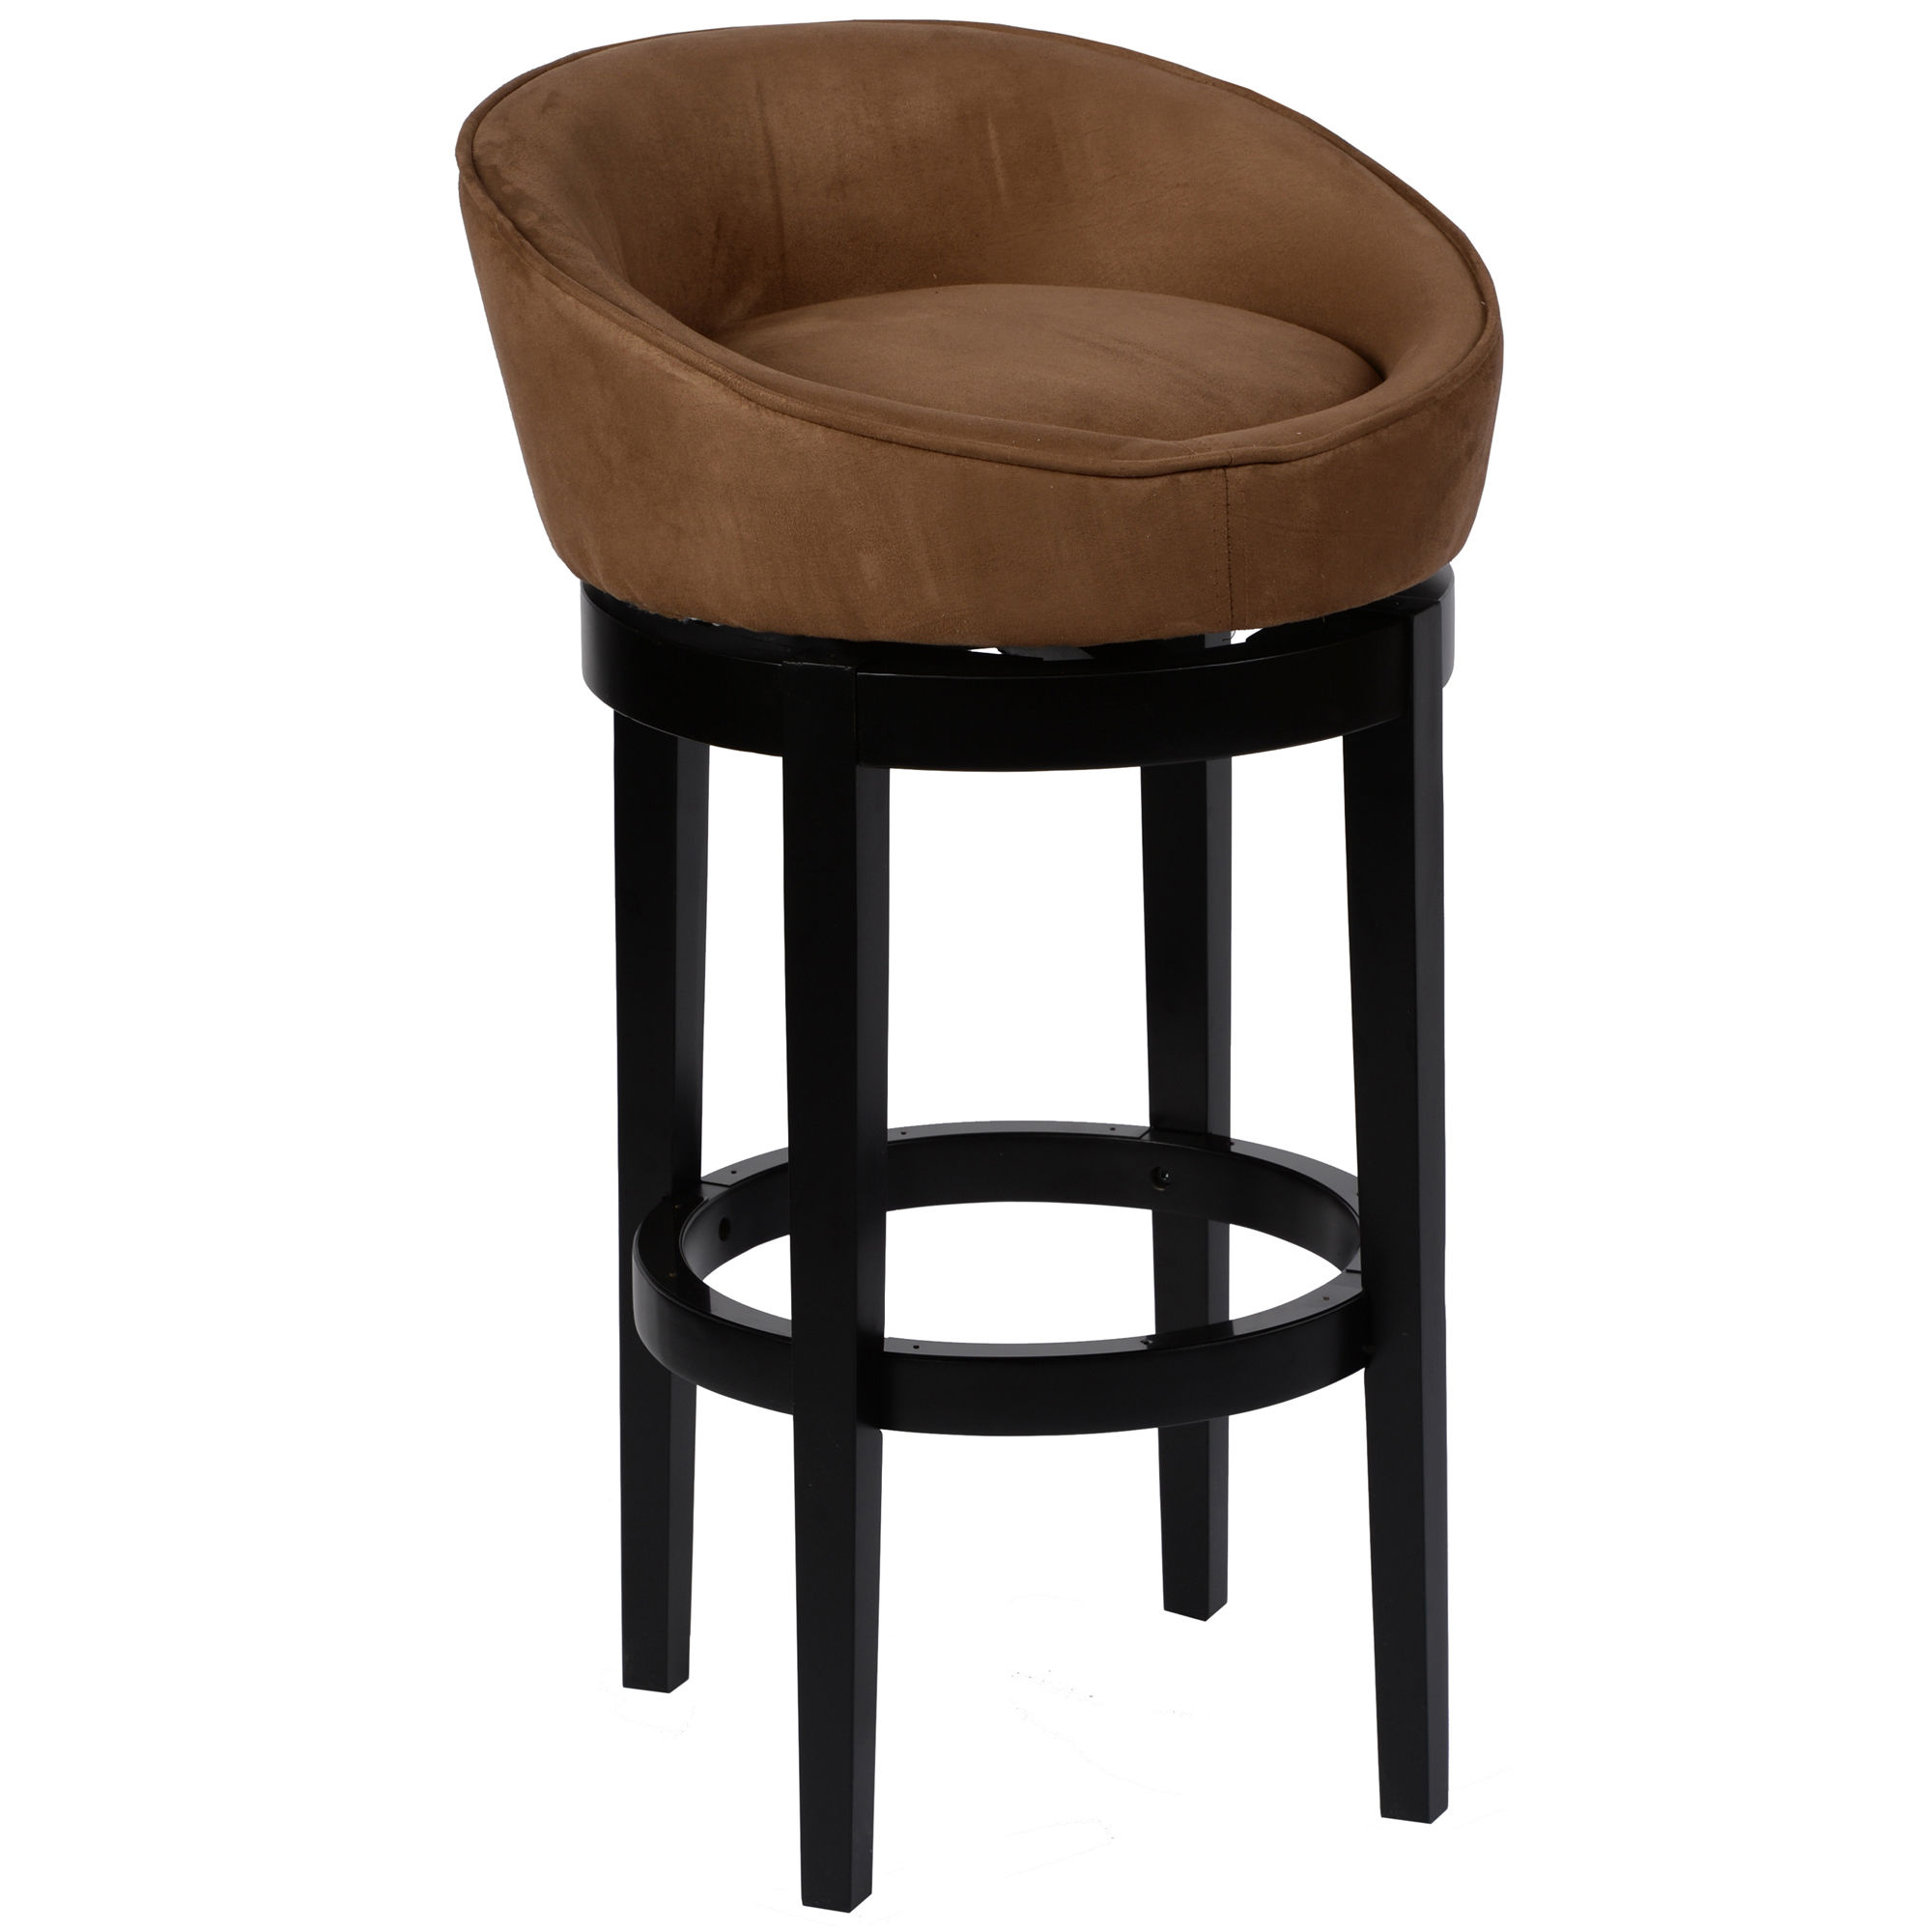 Armen Living Igloo Brown 30 Inch Bar Stool